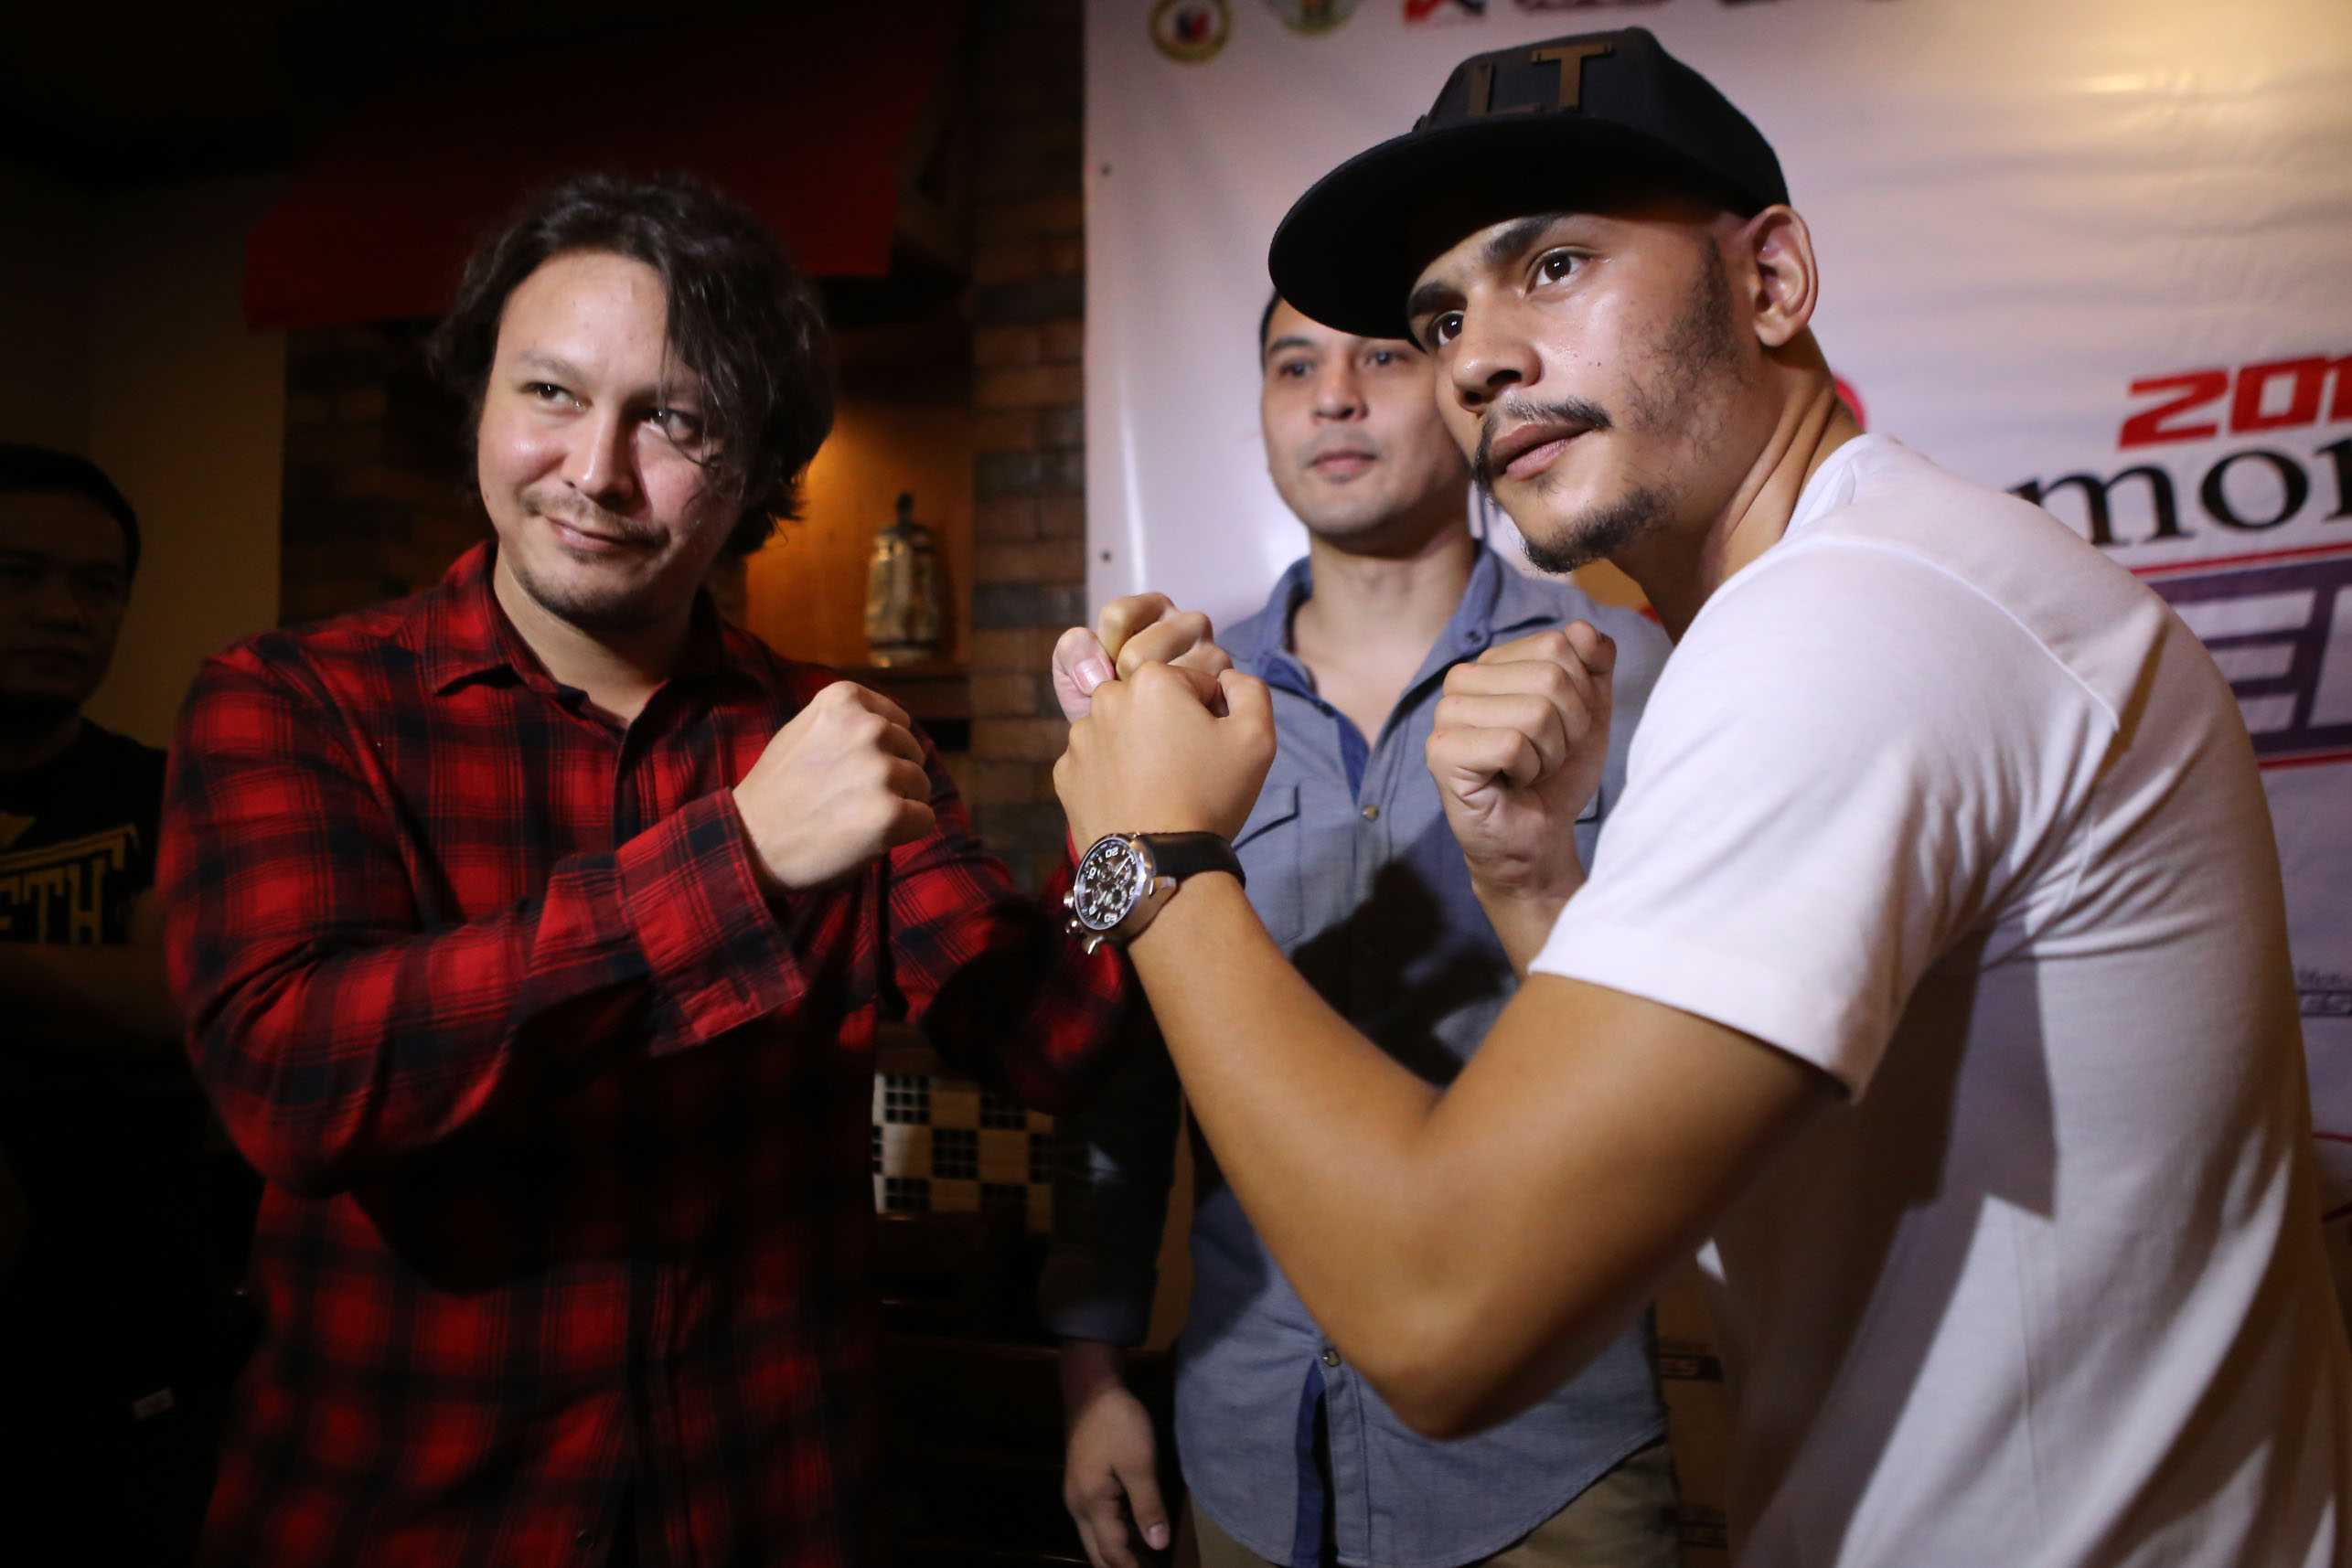 FIGHT. Geisler and Matos will face each other on June 25 inside the URCC cage. Photo by Josh Albelda/Rappler